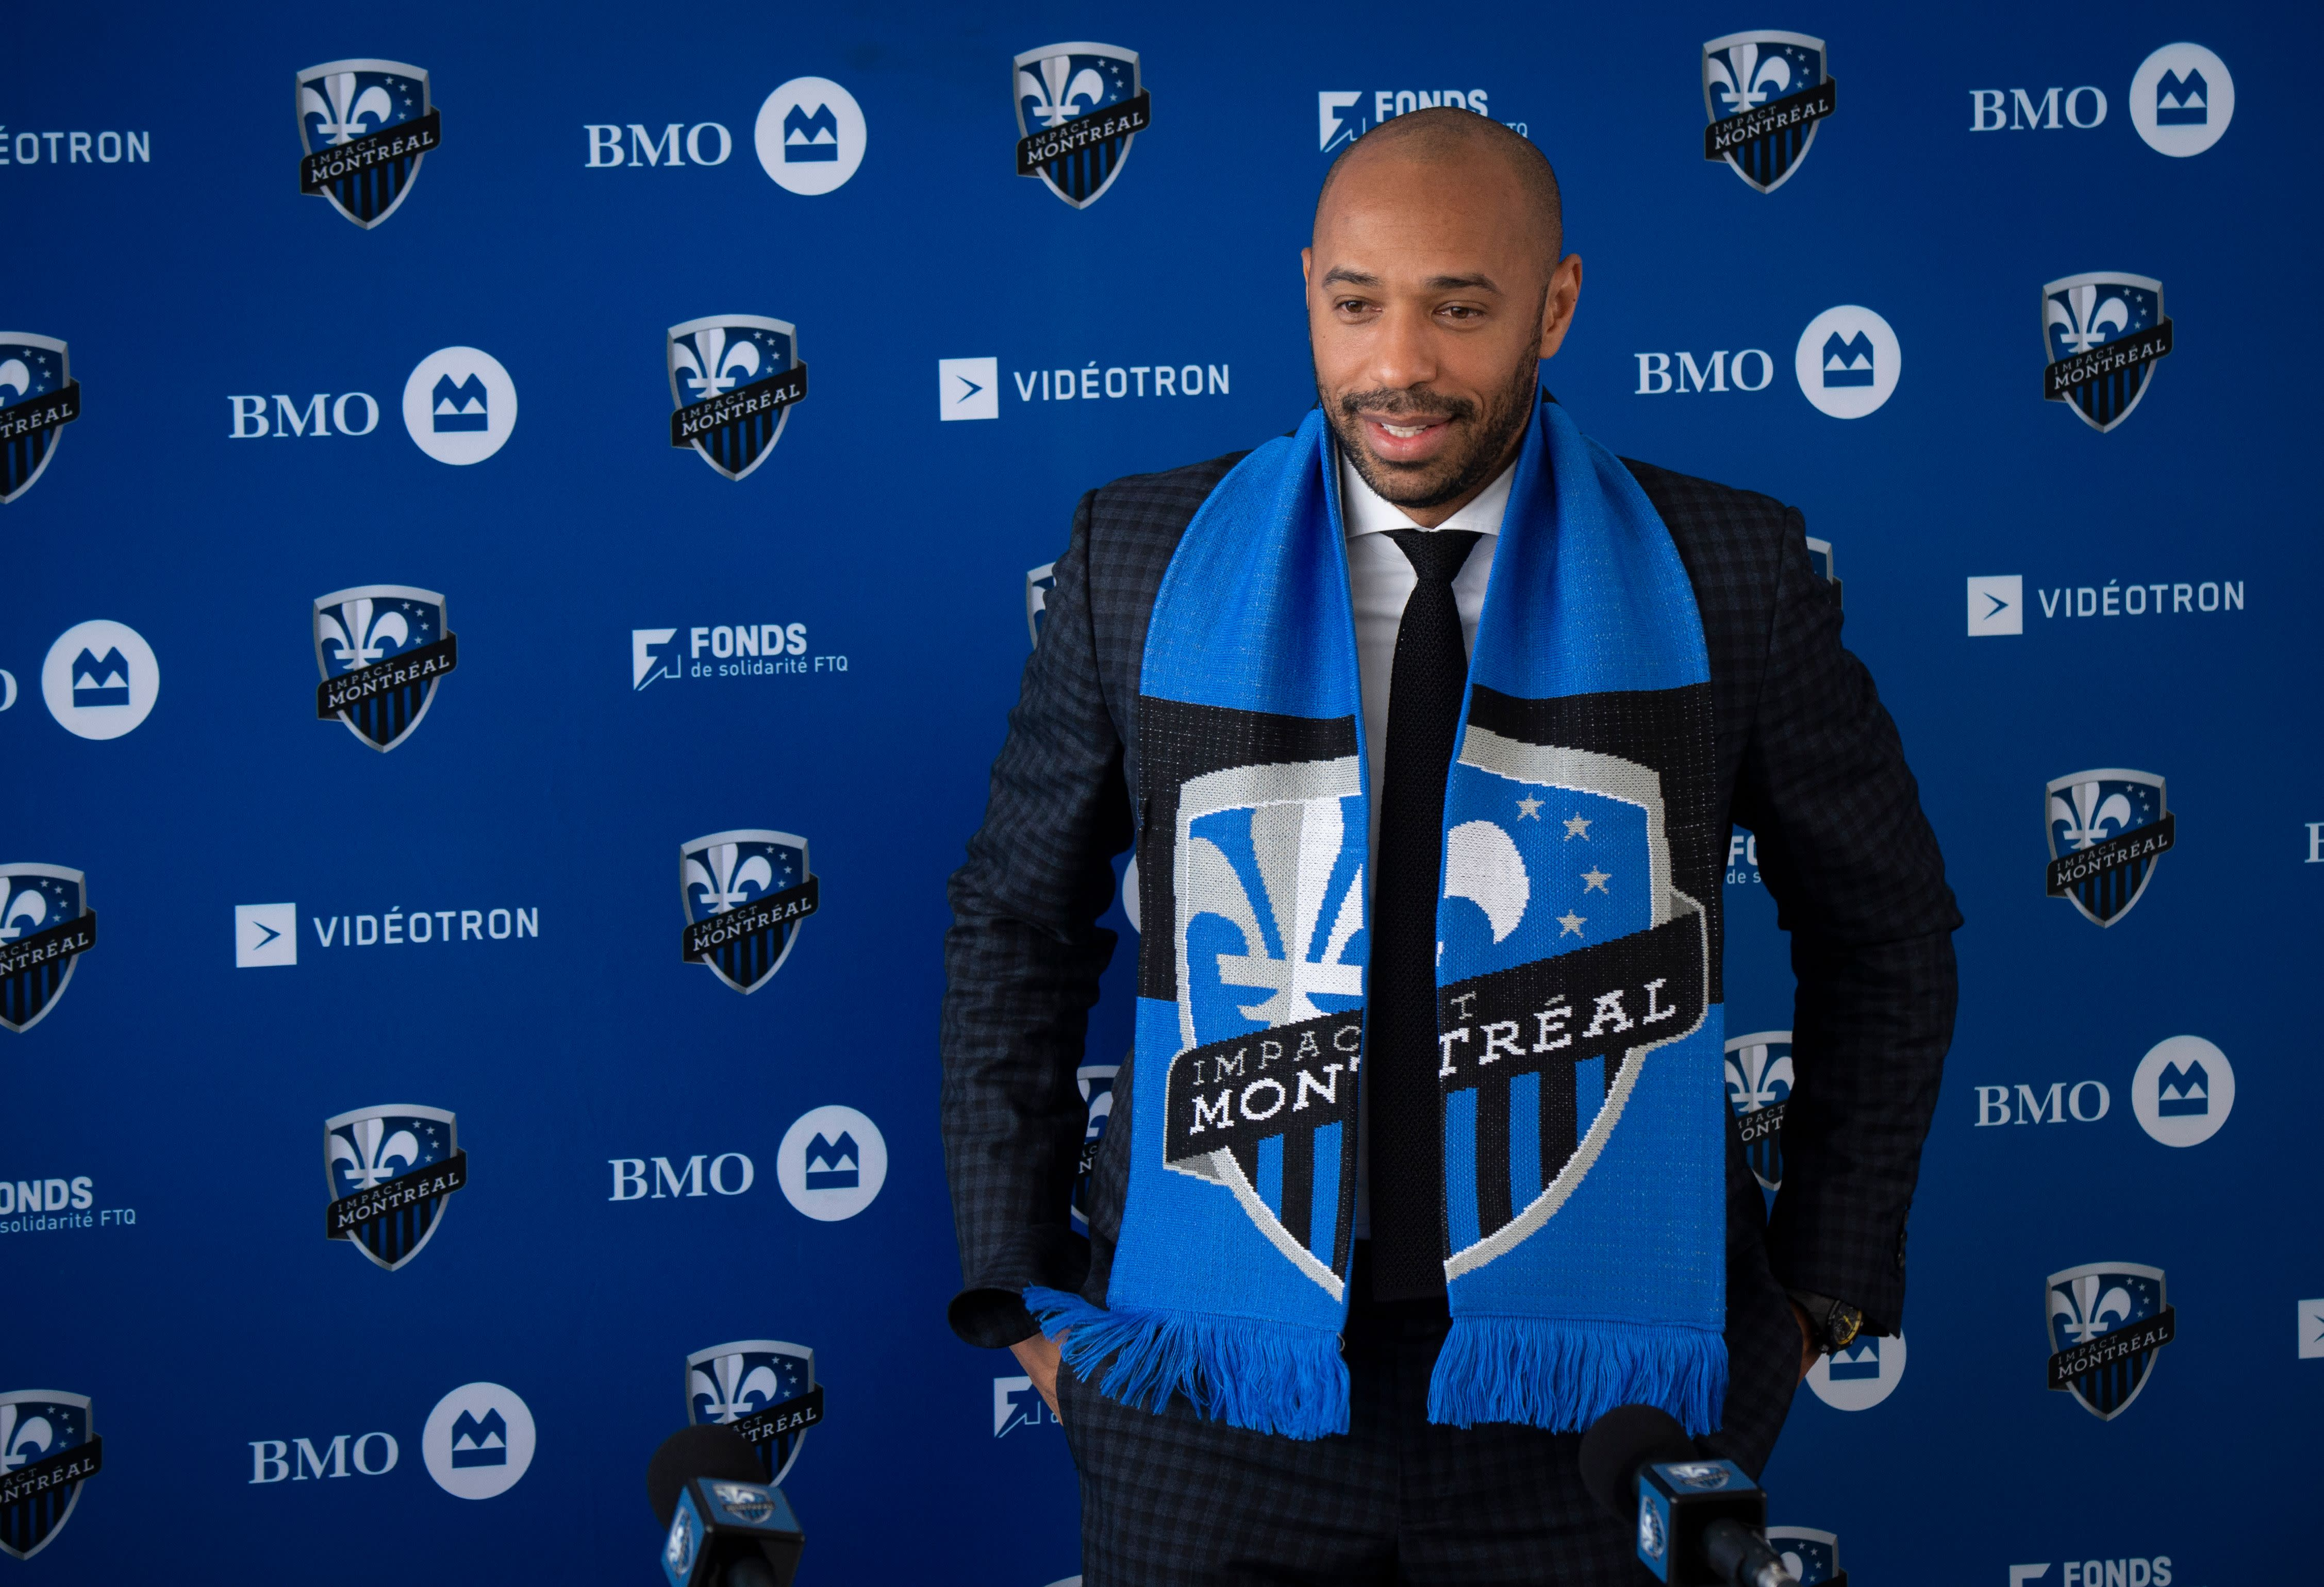 Thierry Henry says lessons from Monaco failure will help him in Montreal